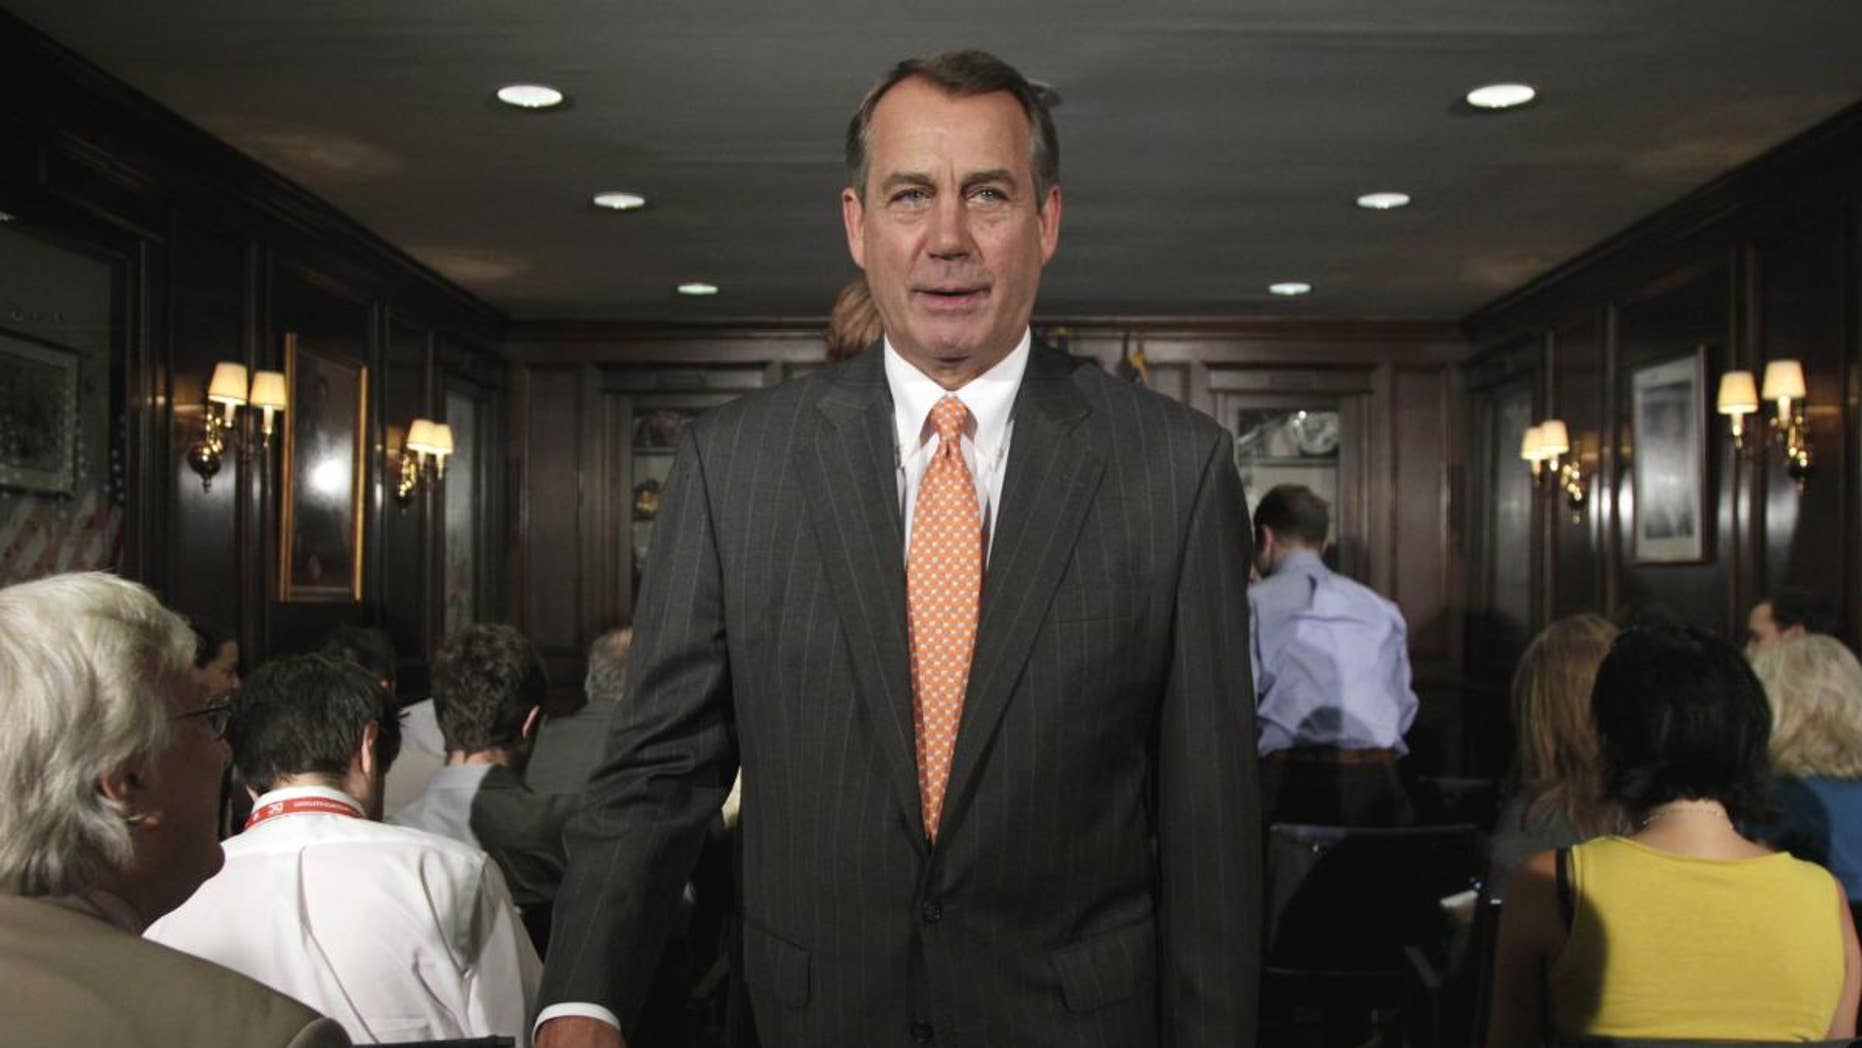 House Speaker John Boehner of Ohio leaves after making a statement at The Republican National Committee on Capitol Hill in Washington, Tuesday, July 26, 2011. (AP Photo/Carolyn Kaster)